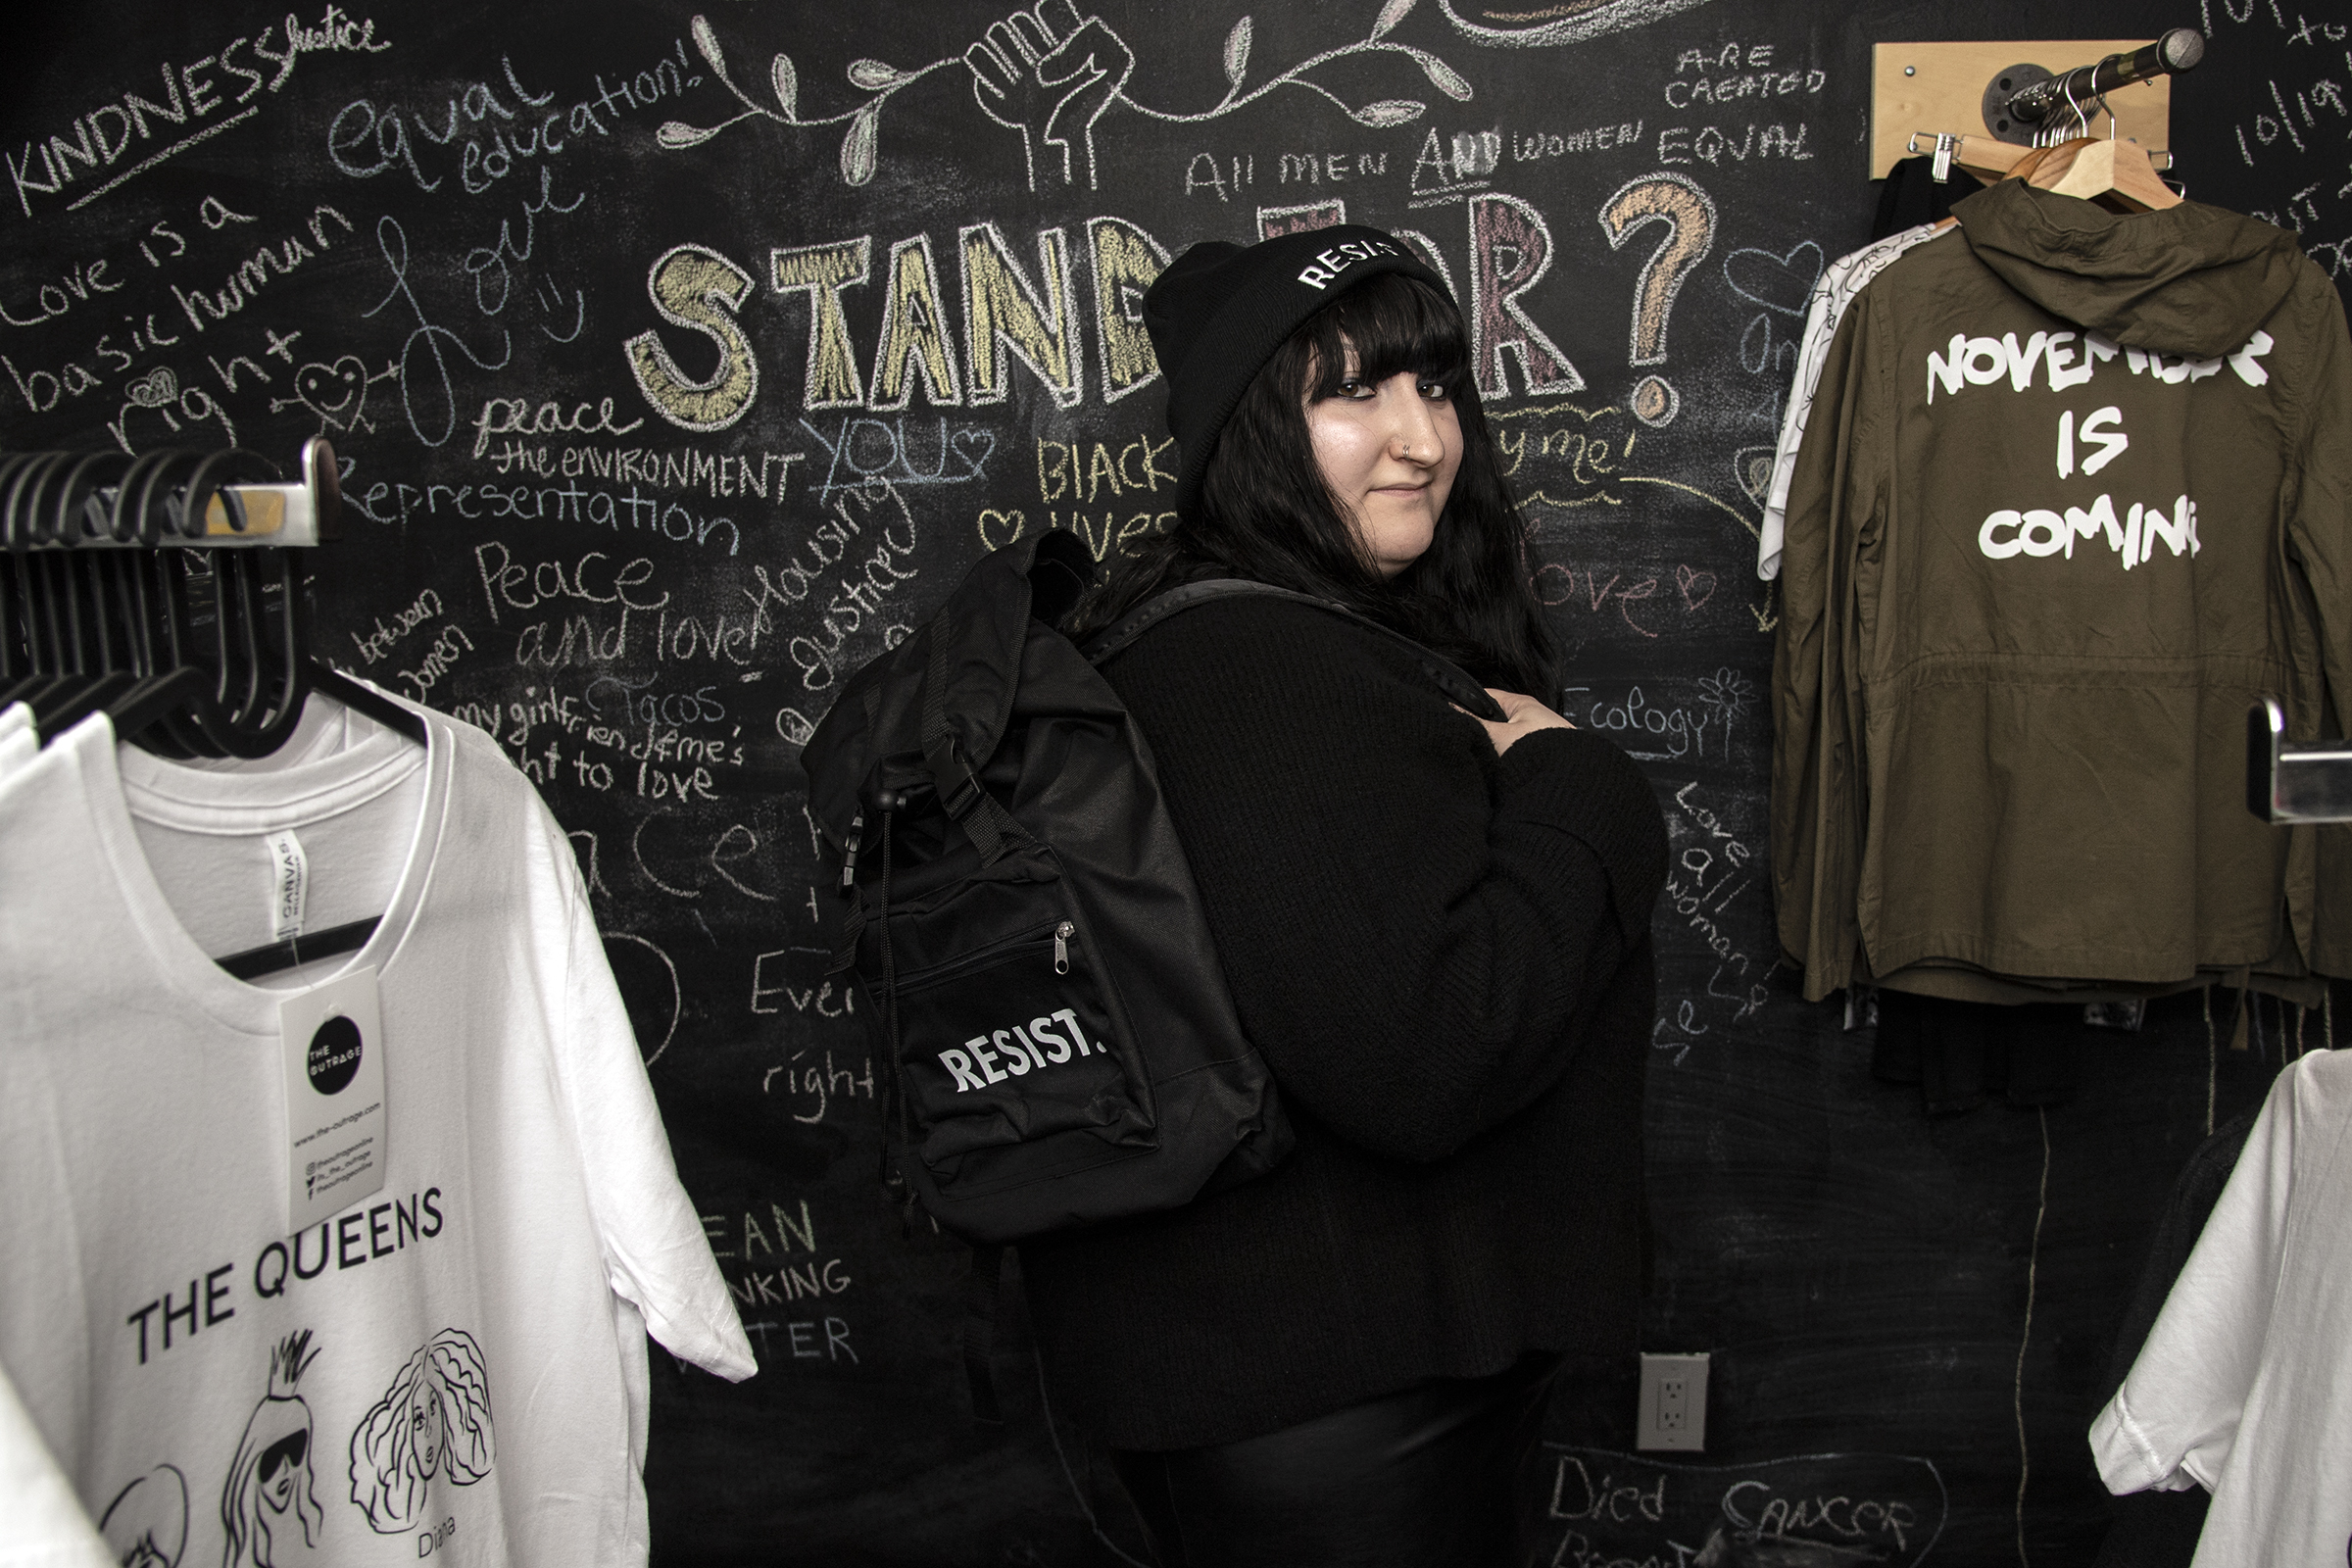 Carly Shapiro shows some of the protest merchandise at The Outrage/ store located on 321 Arch Street, Philadelphia. Monday, October 22, 2018. JOSE F. MORENO / Staff Photographer.